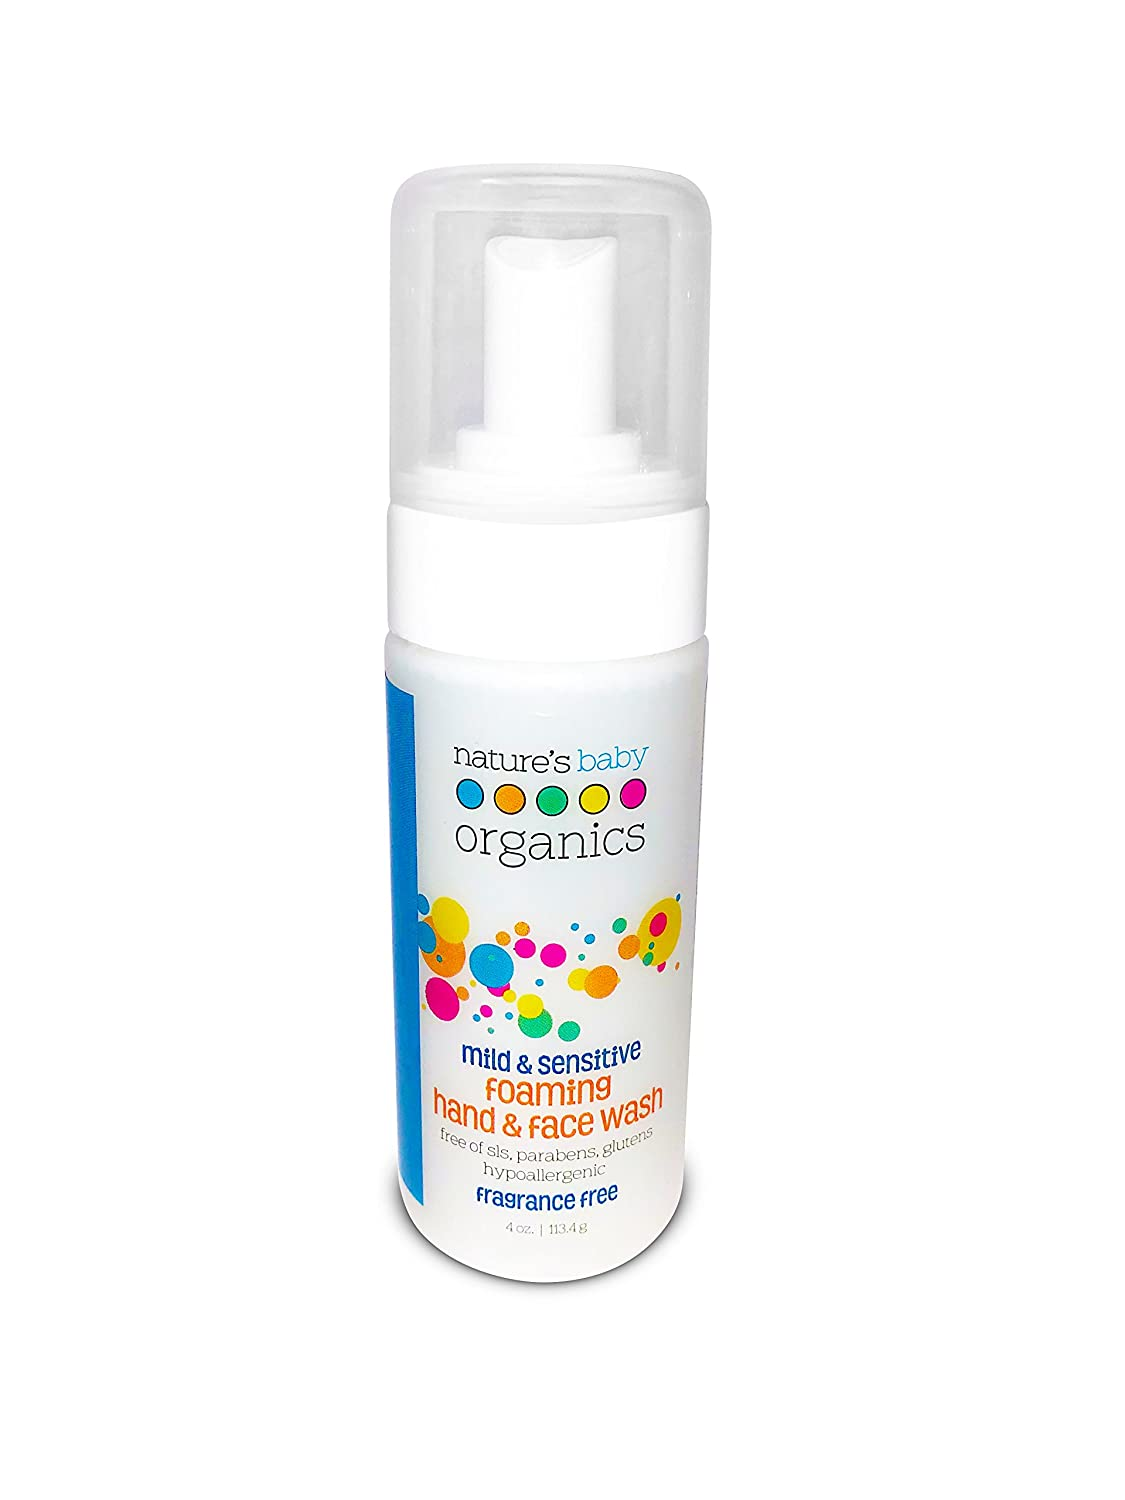 Nature's Baby Organics Foaming Face Cleanser & Hand Wash